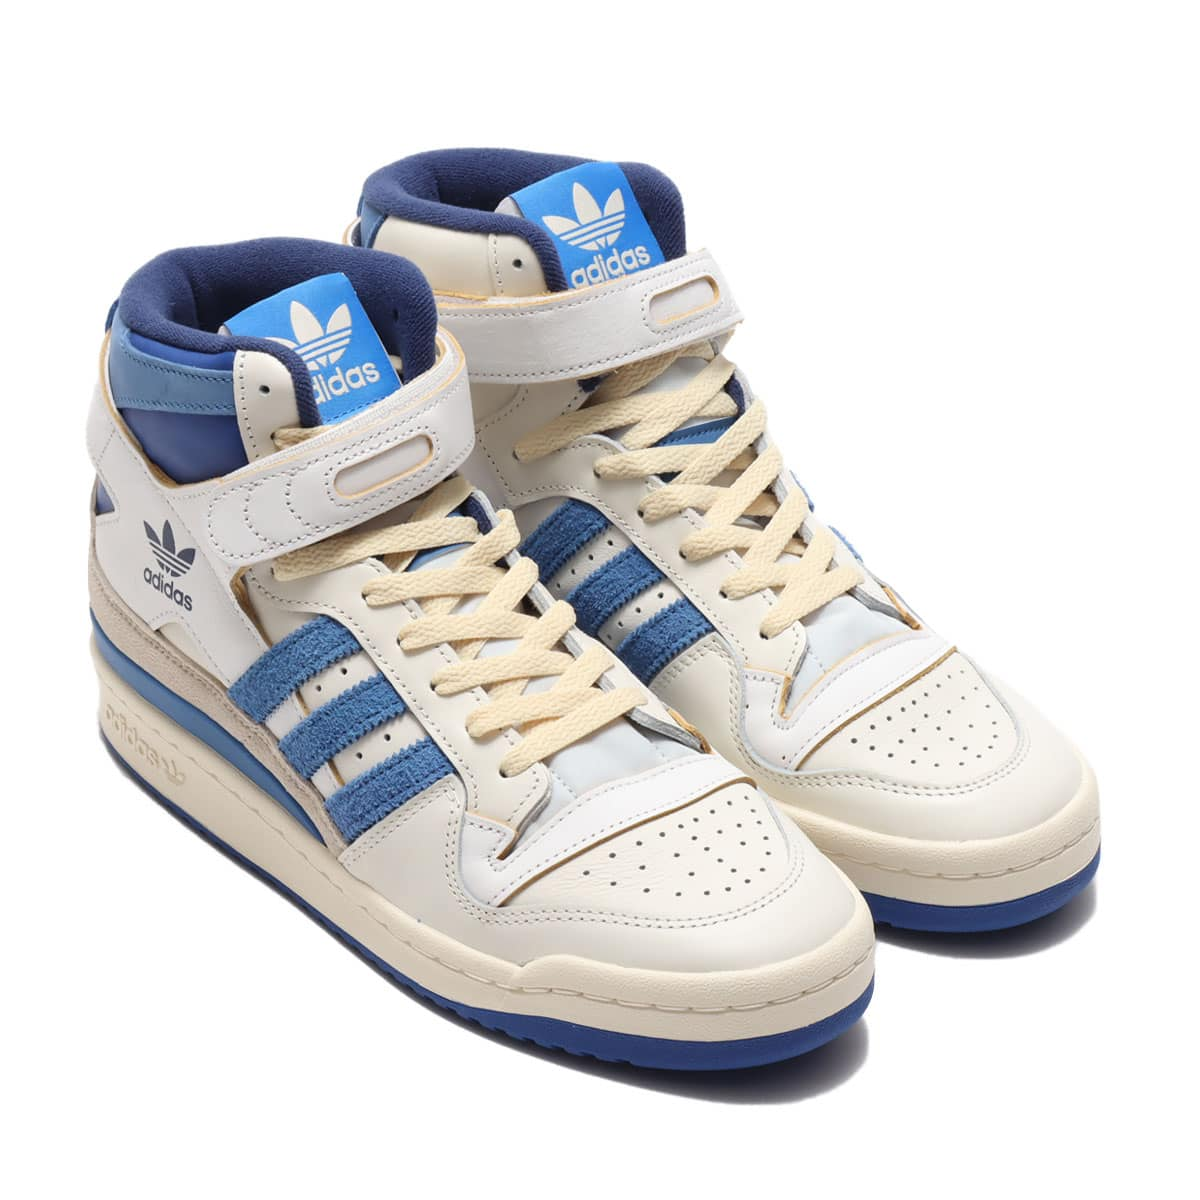 adidas FORUM 84 HIGH BLUE THREAD OFF WHITE/BRIGHT BLUE/FOOTWEAR WHITE 21SS-S_photo_large